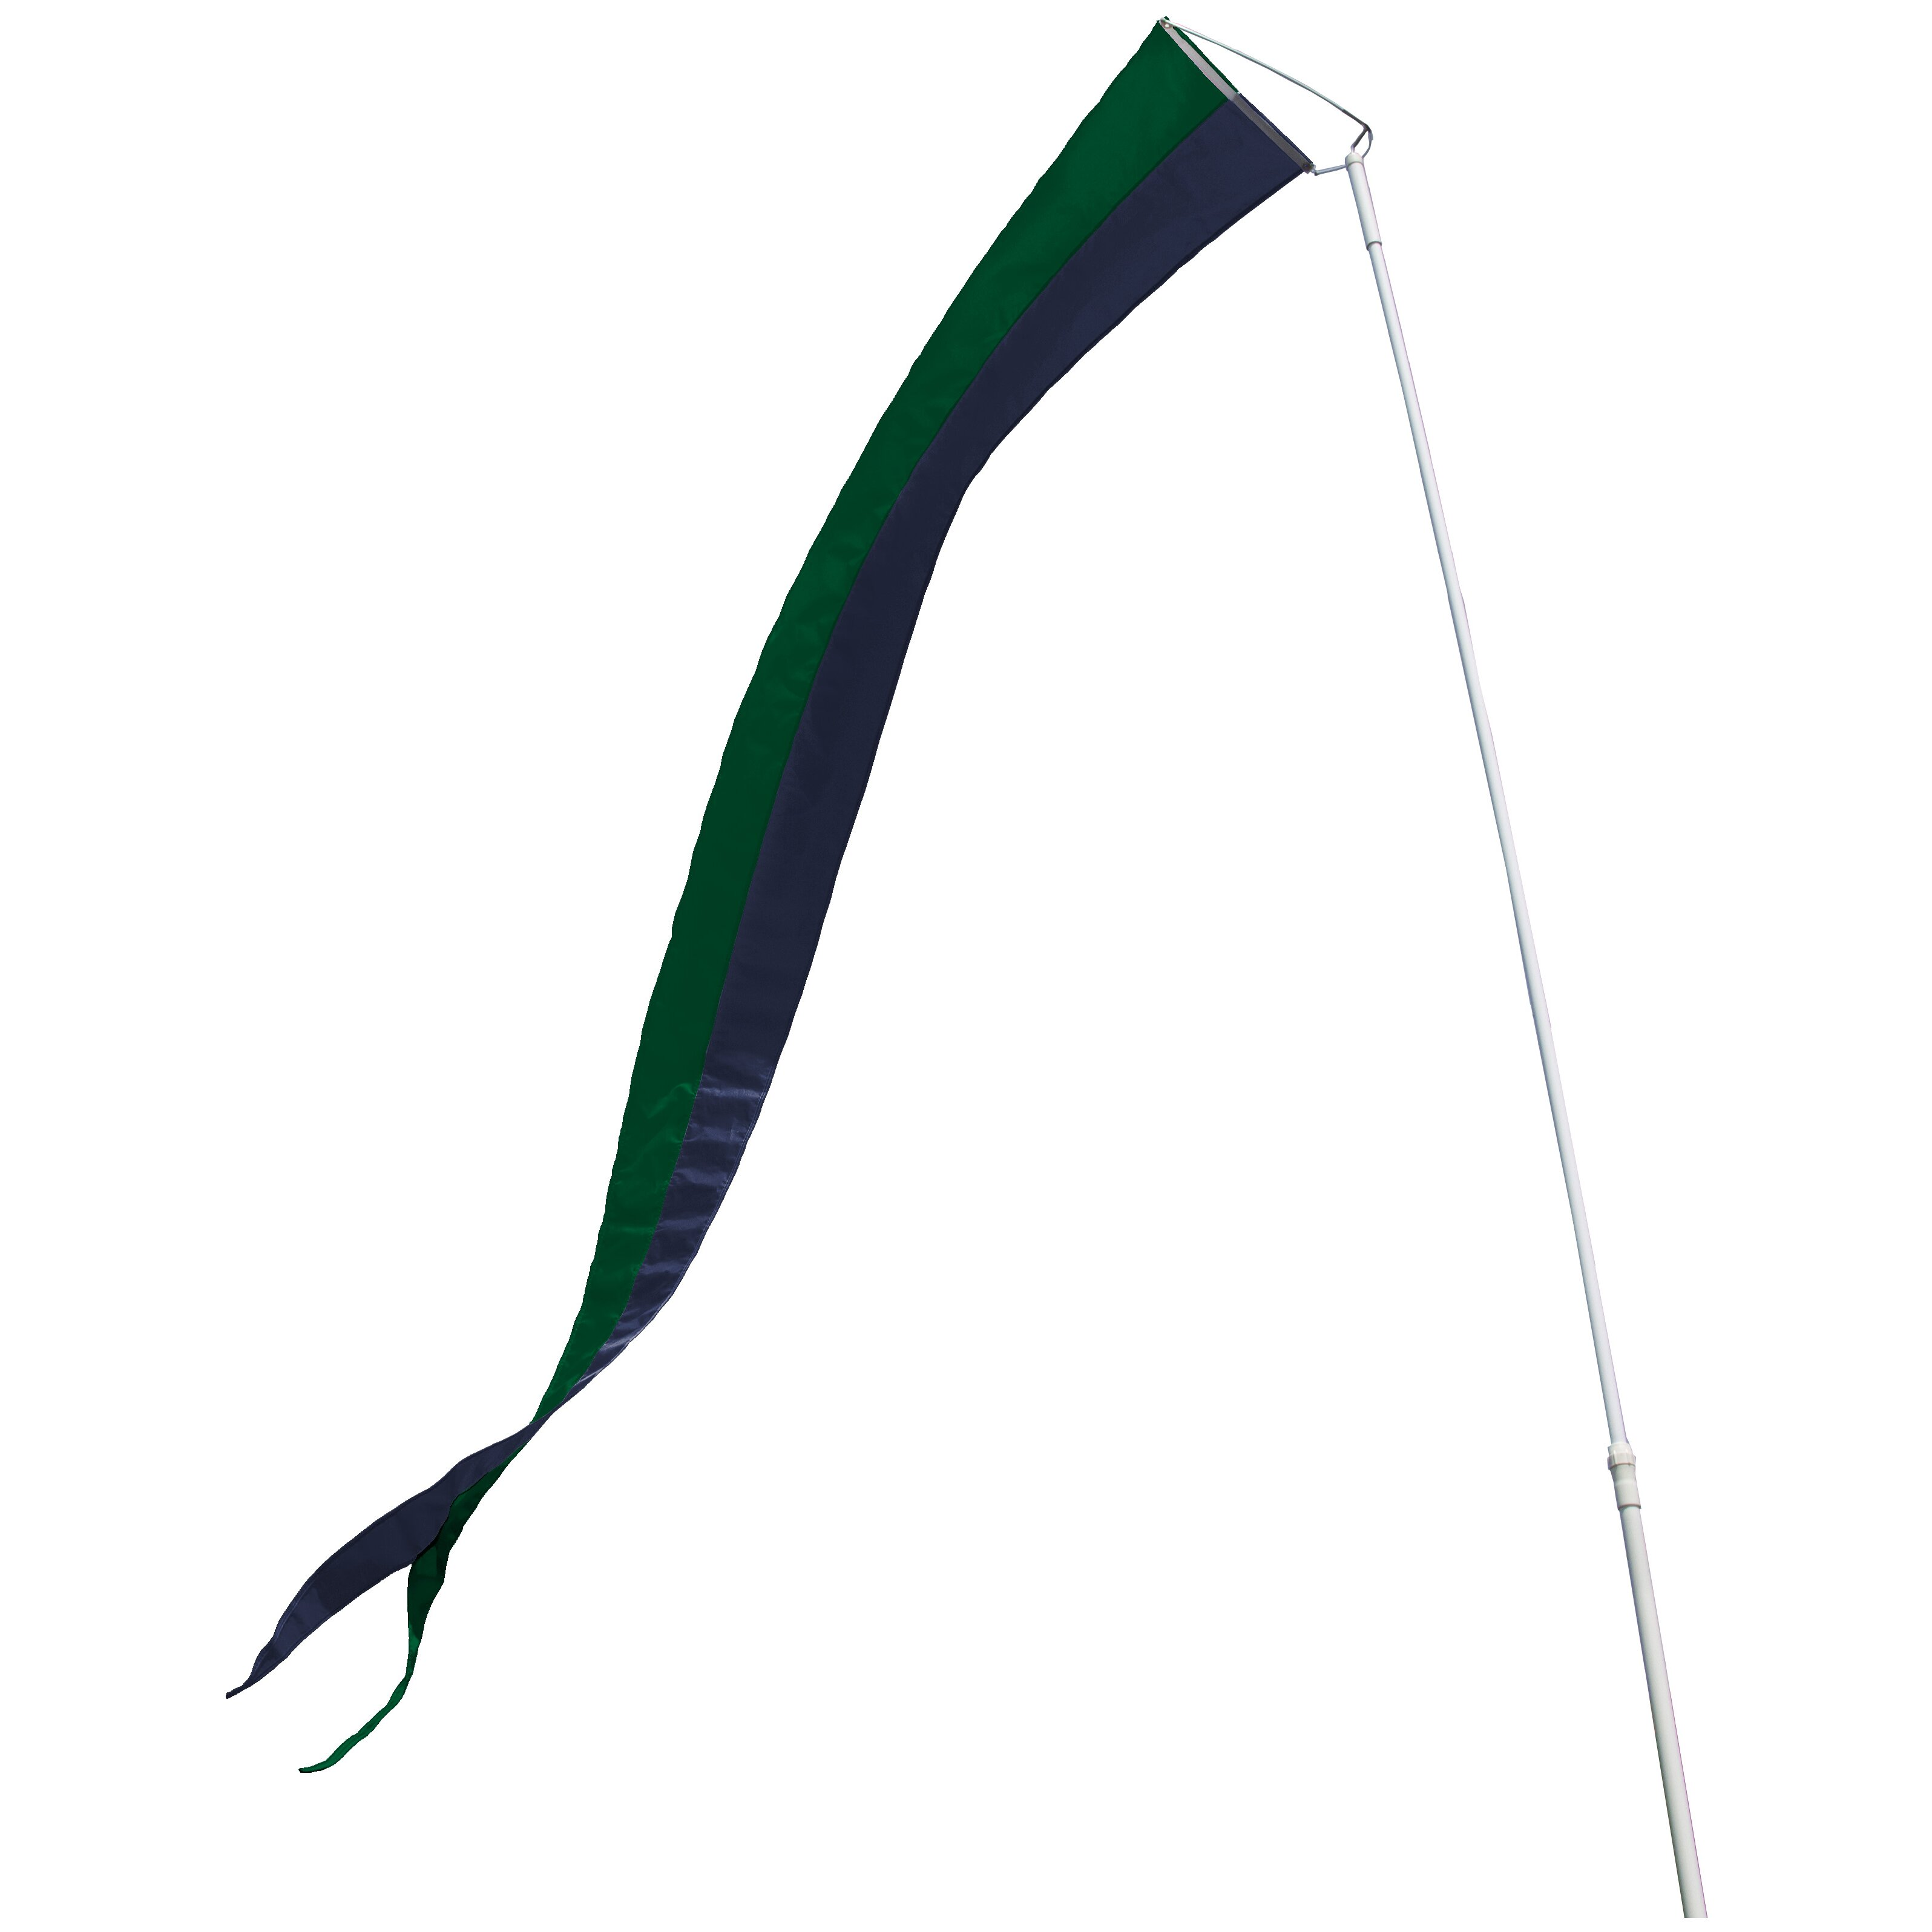 dori system Bd-00610 dori pole® jr pennant system trouble free • portable • eye-catching • versatile attract attention to your marina or boat dealership increase attention while adding color and vibrancy to your festival, event, business or home these bea.